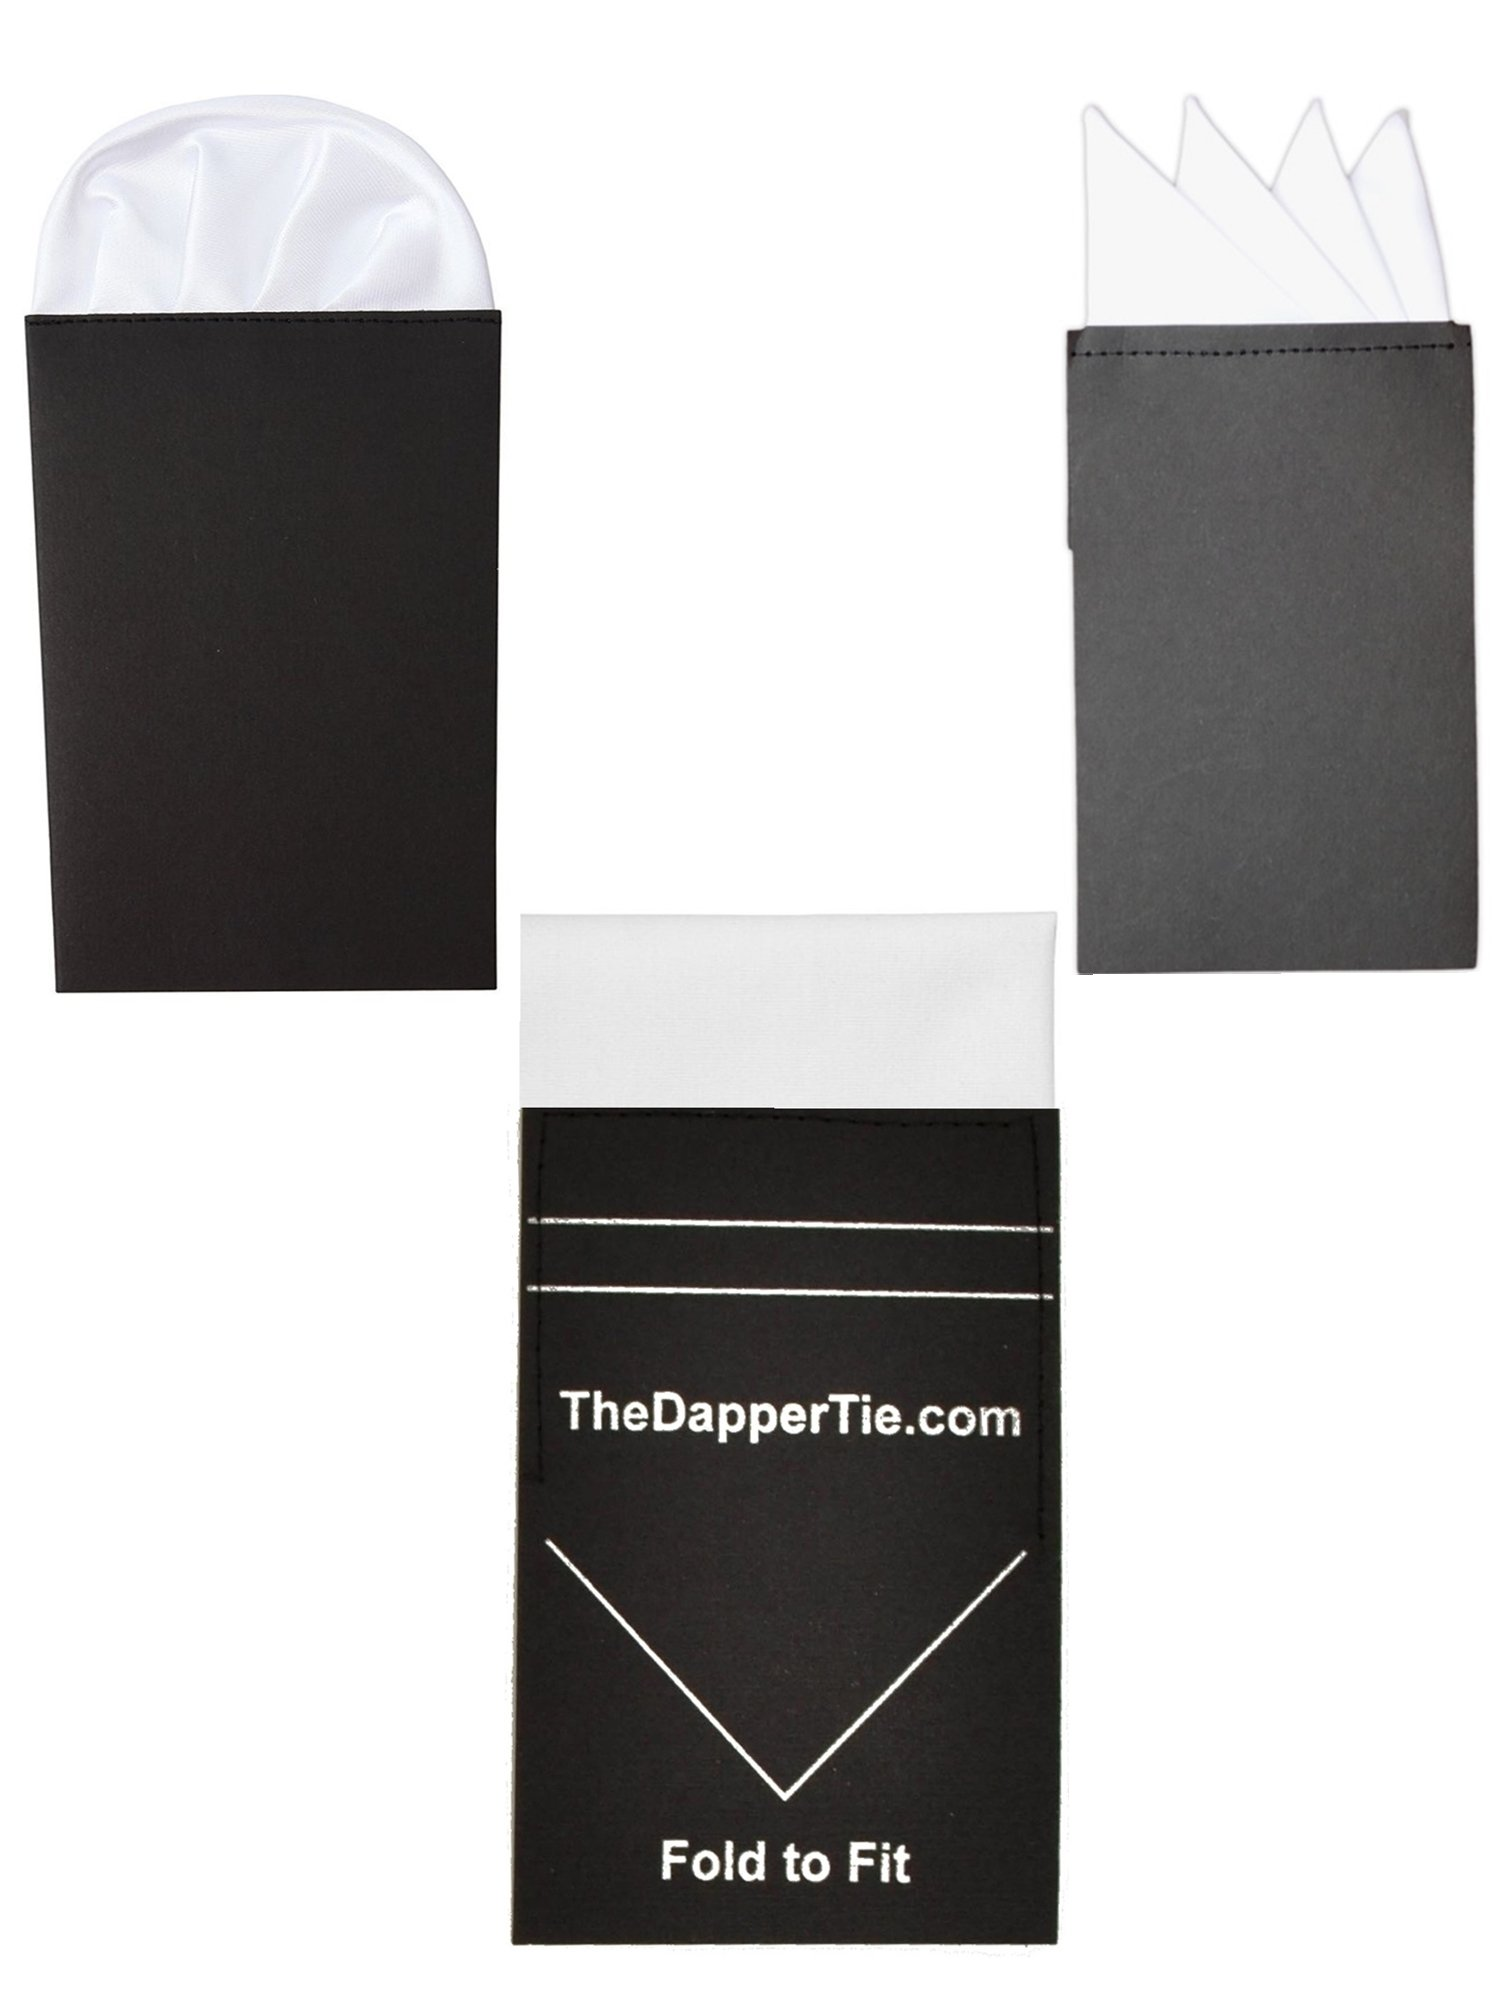 TheDapperTie - Men's White 3 Pre Folded Pocket square Set - Flat, 4 Point, Puff